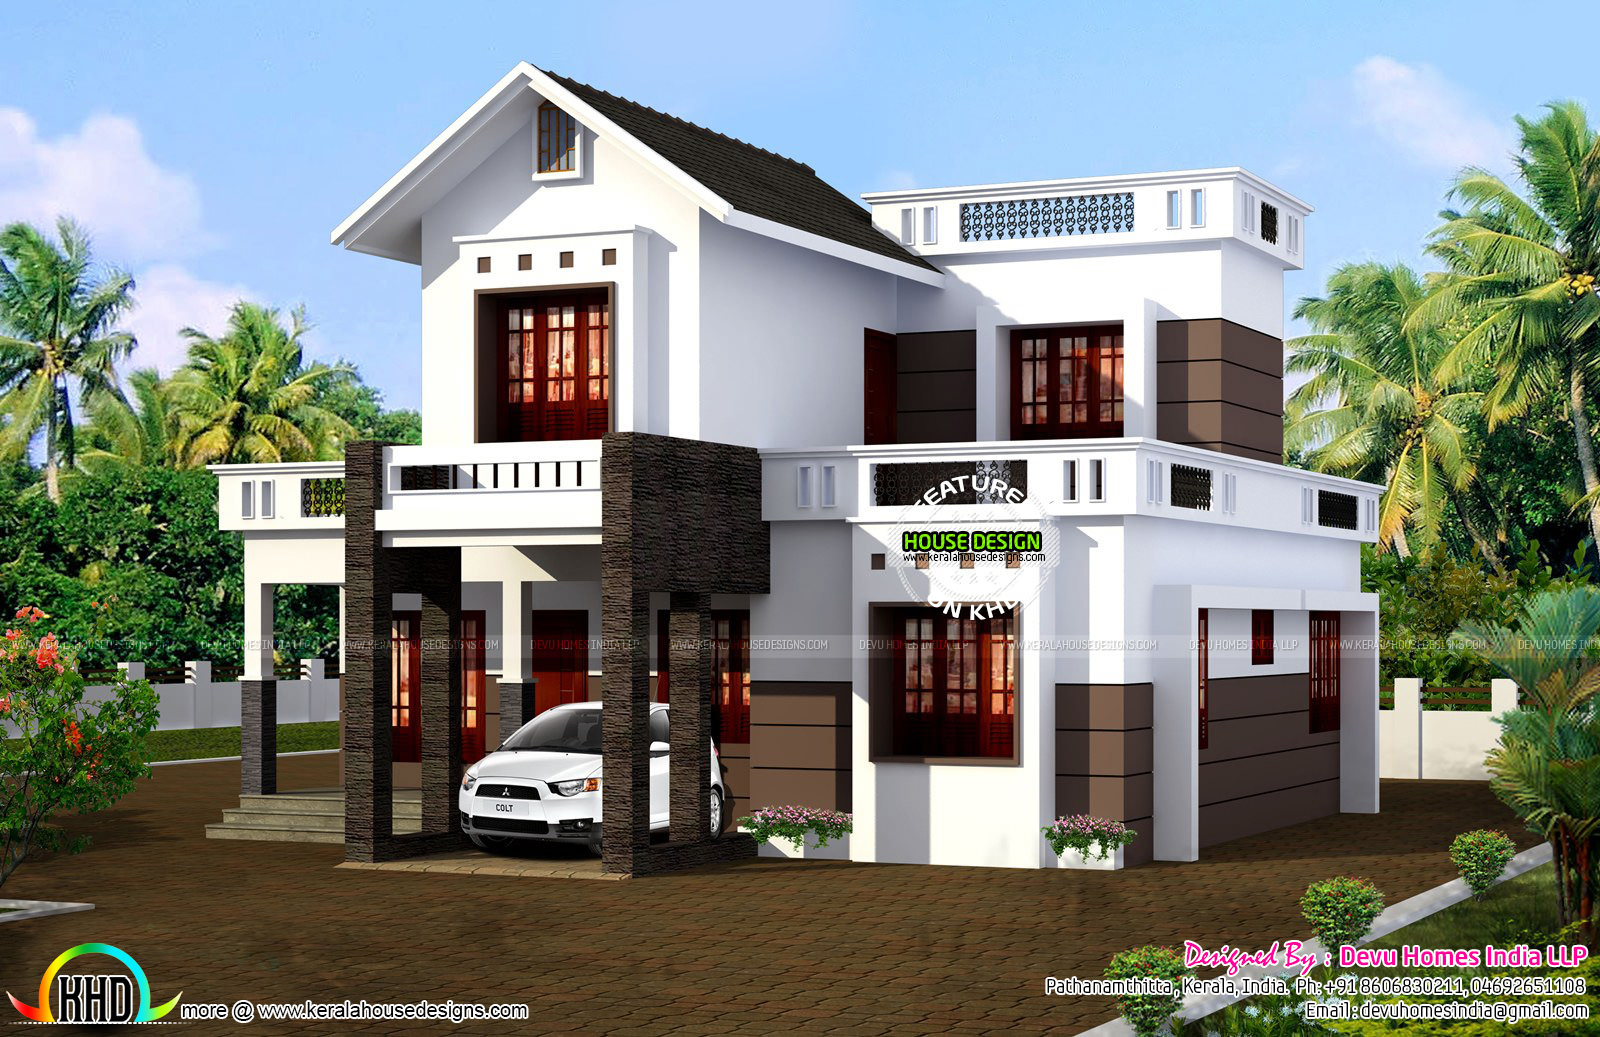 Simple 1524 sq ft house plan kerala home design and for Modern house simple